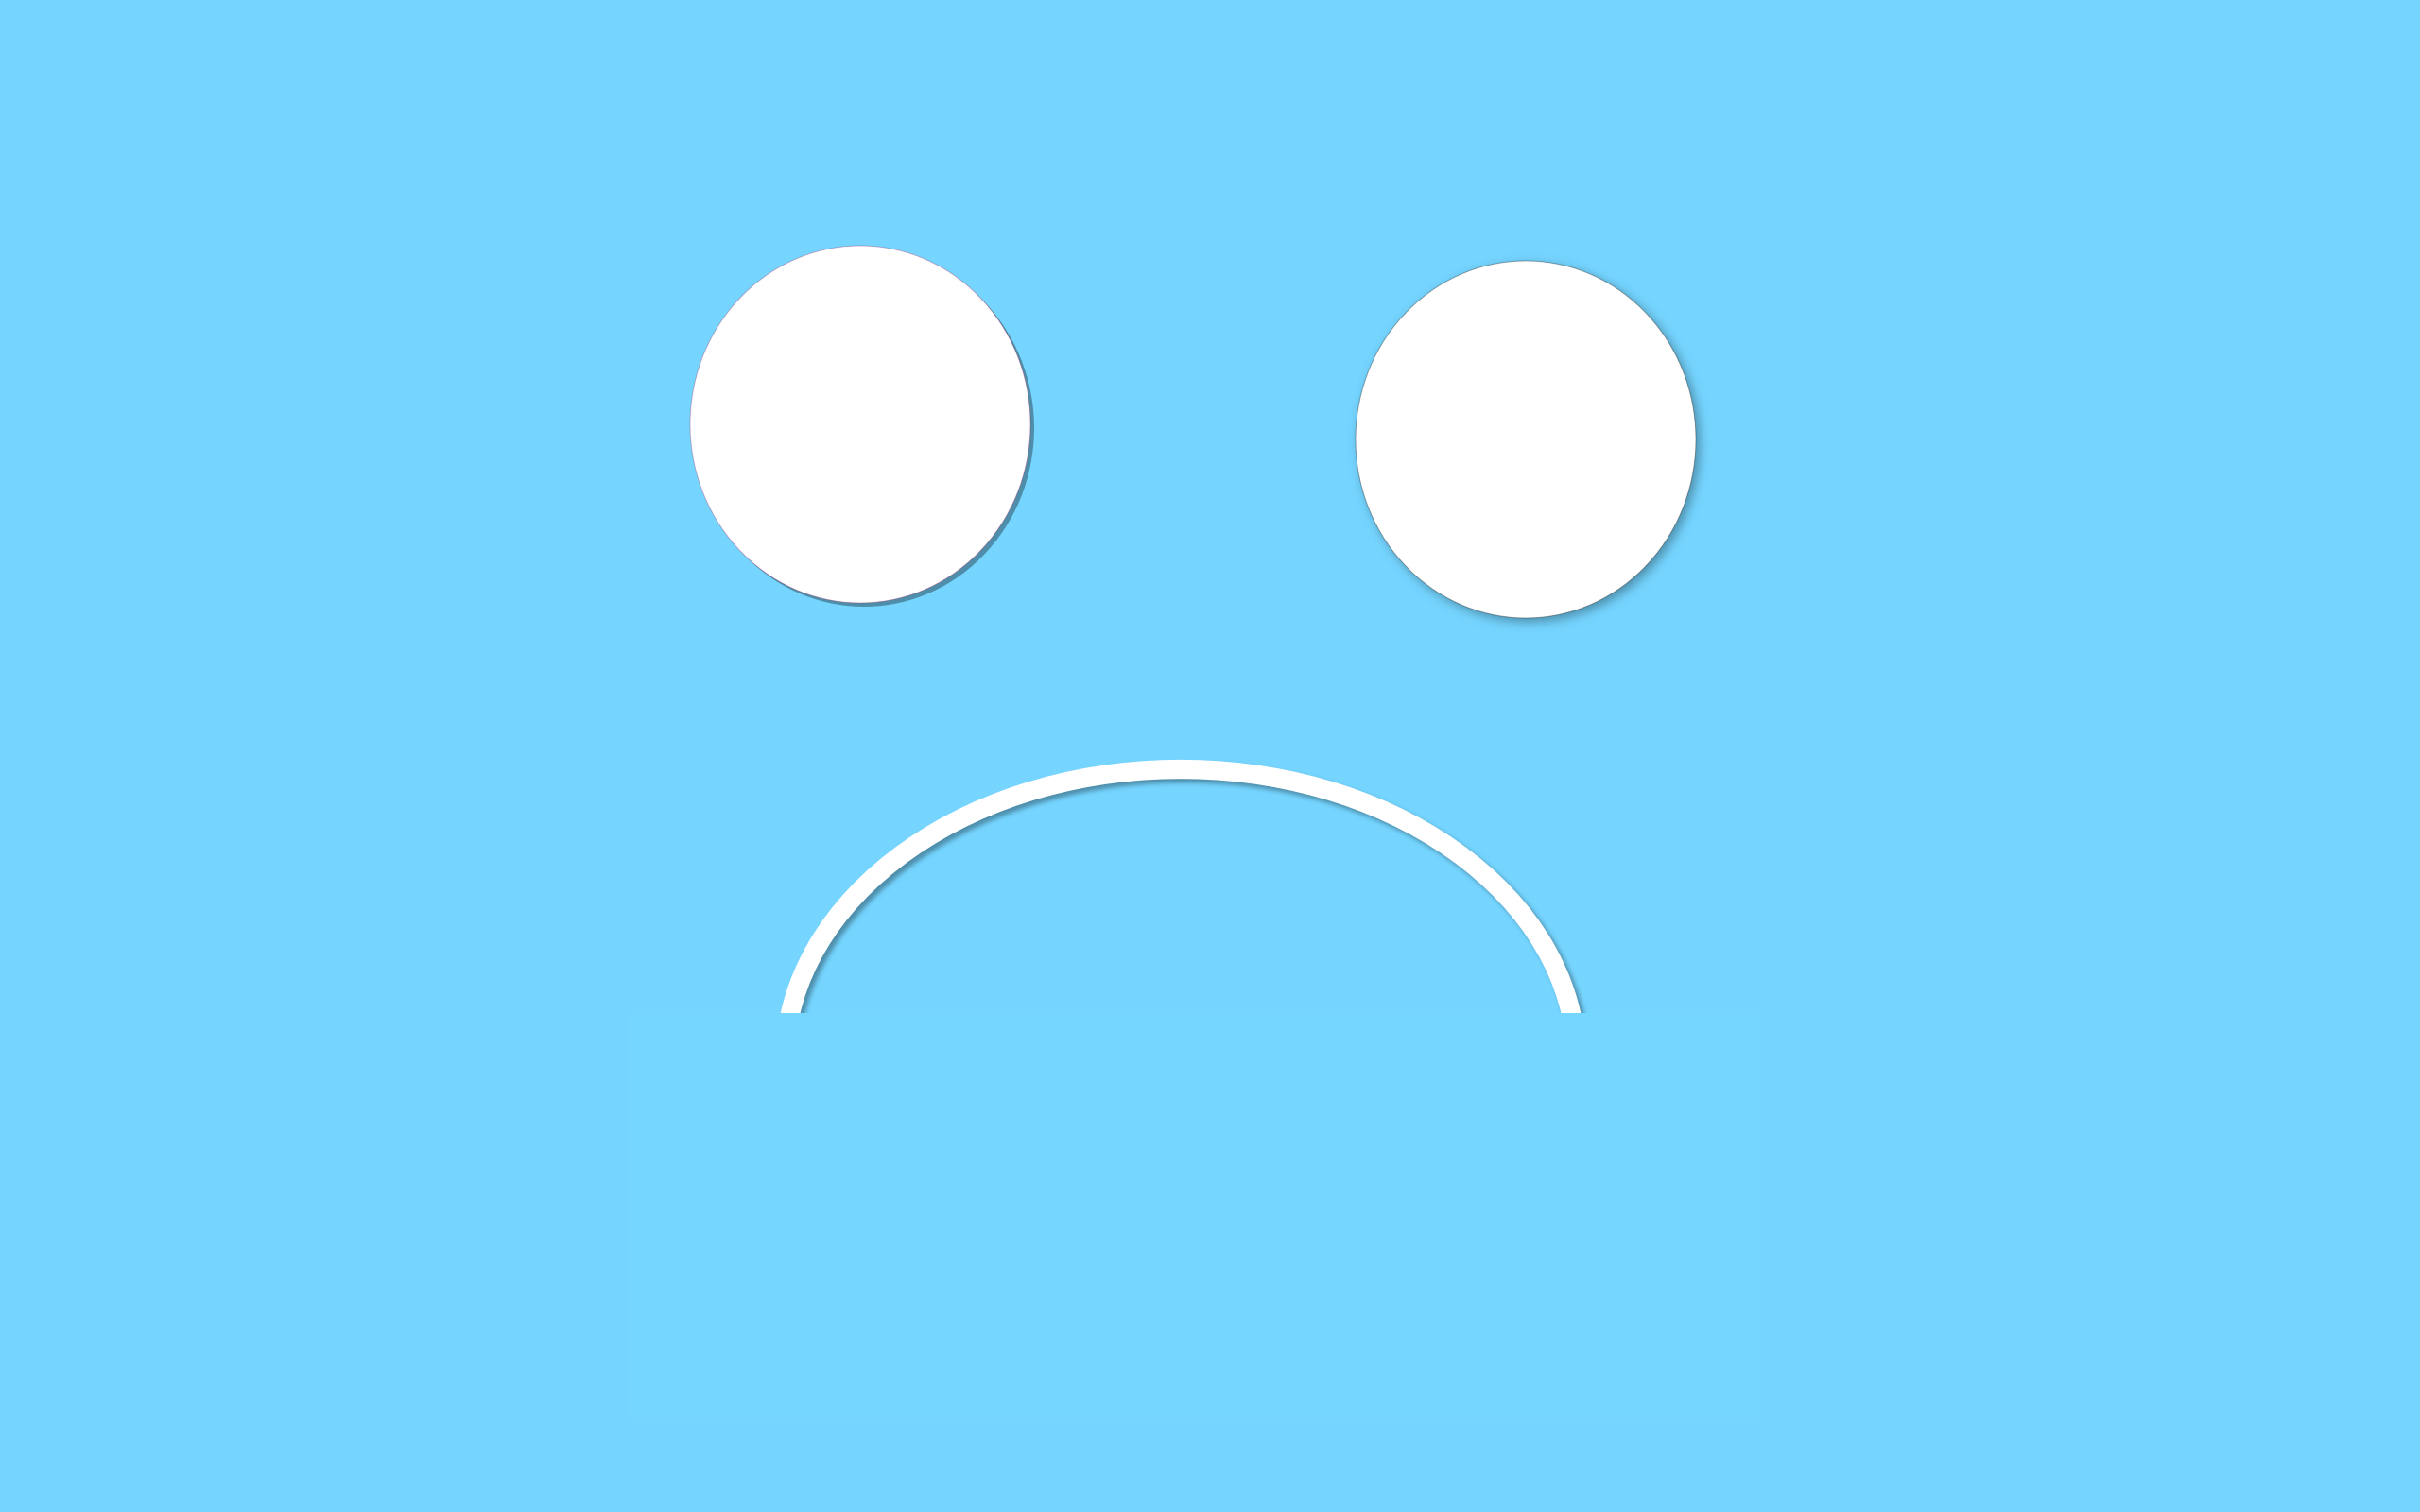 Sad Face Wallpapers 2560x1600